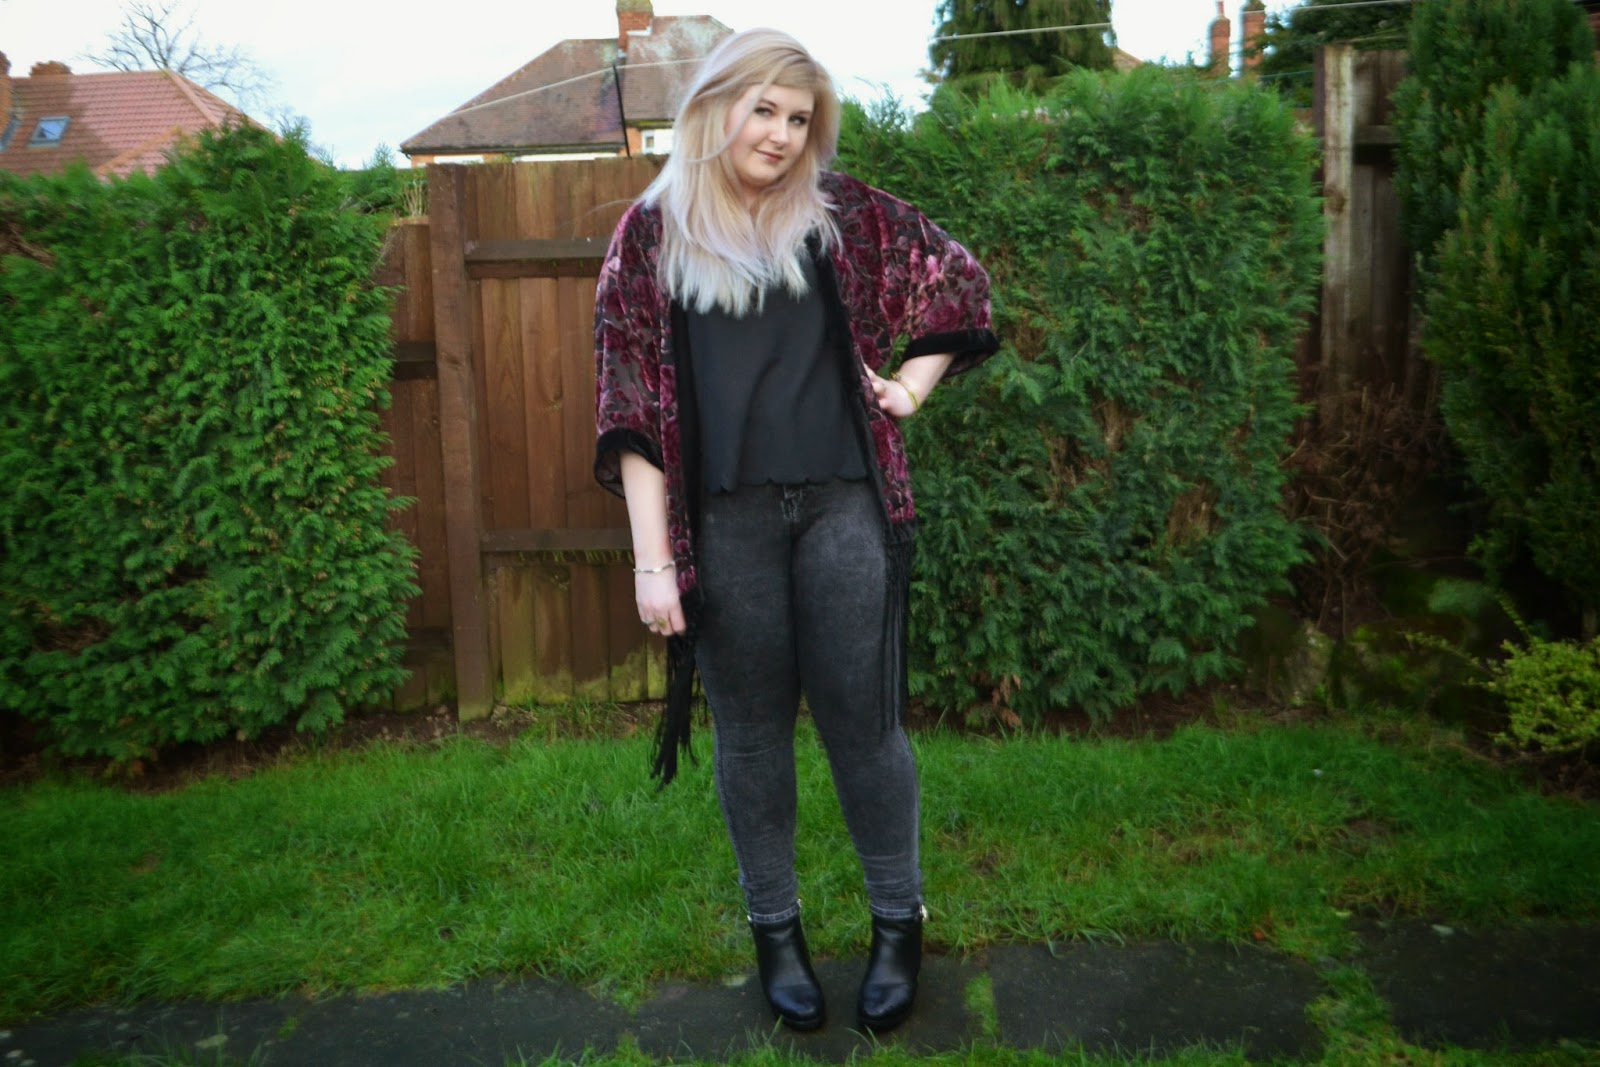 Full body outfit shot showing me wearing a black top, grey jeans, heeled boots and a deep pink kimono